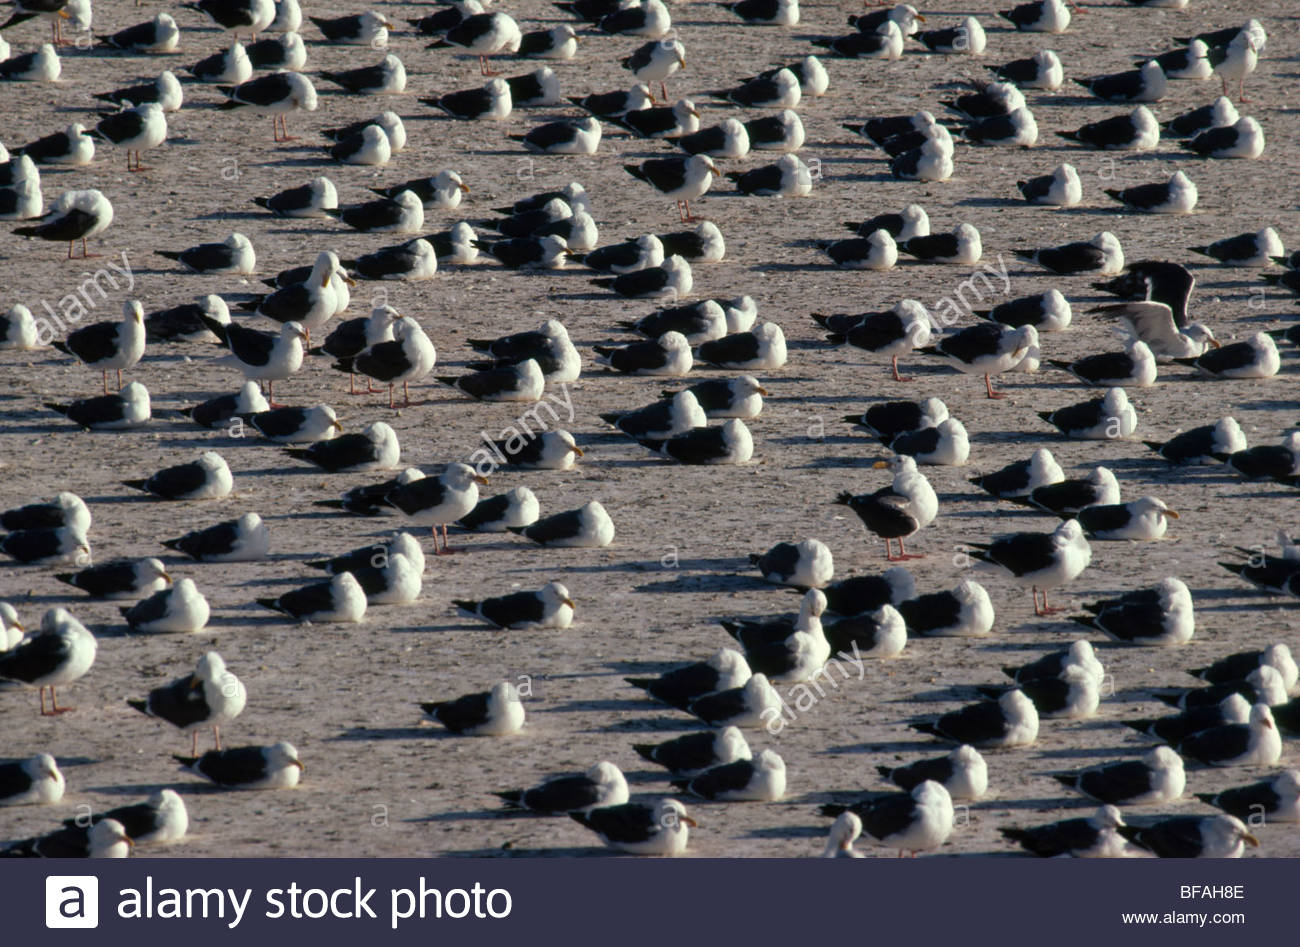 Western gulls sleeping, Larus occidentalis, Gulf of Farallones National Marine Sanctuary, California - Stock Image